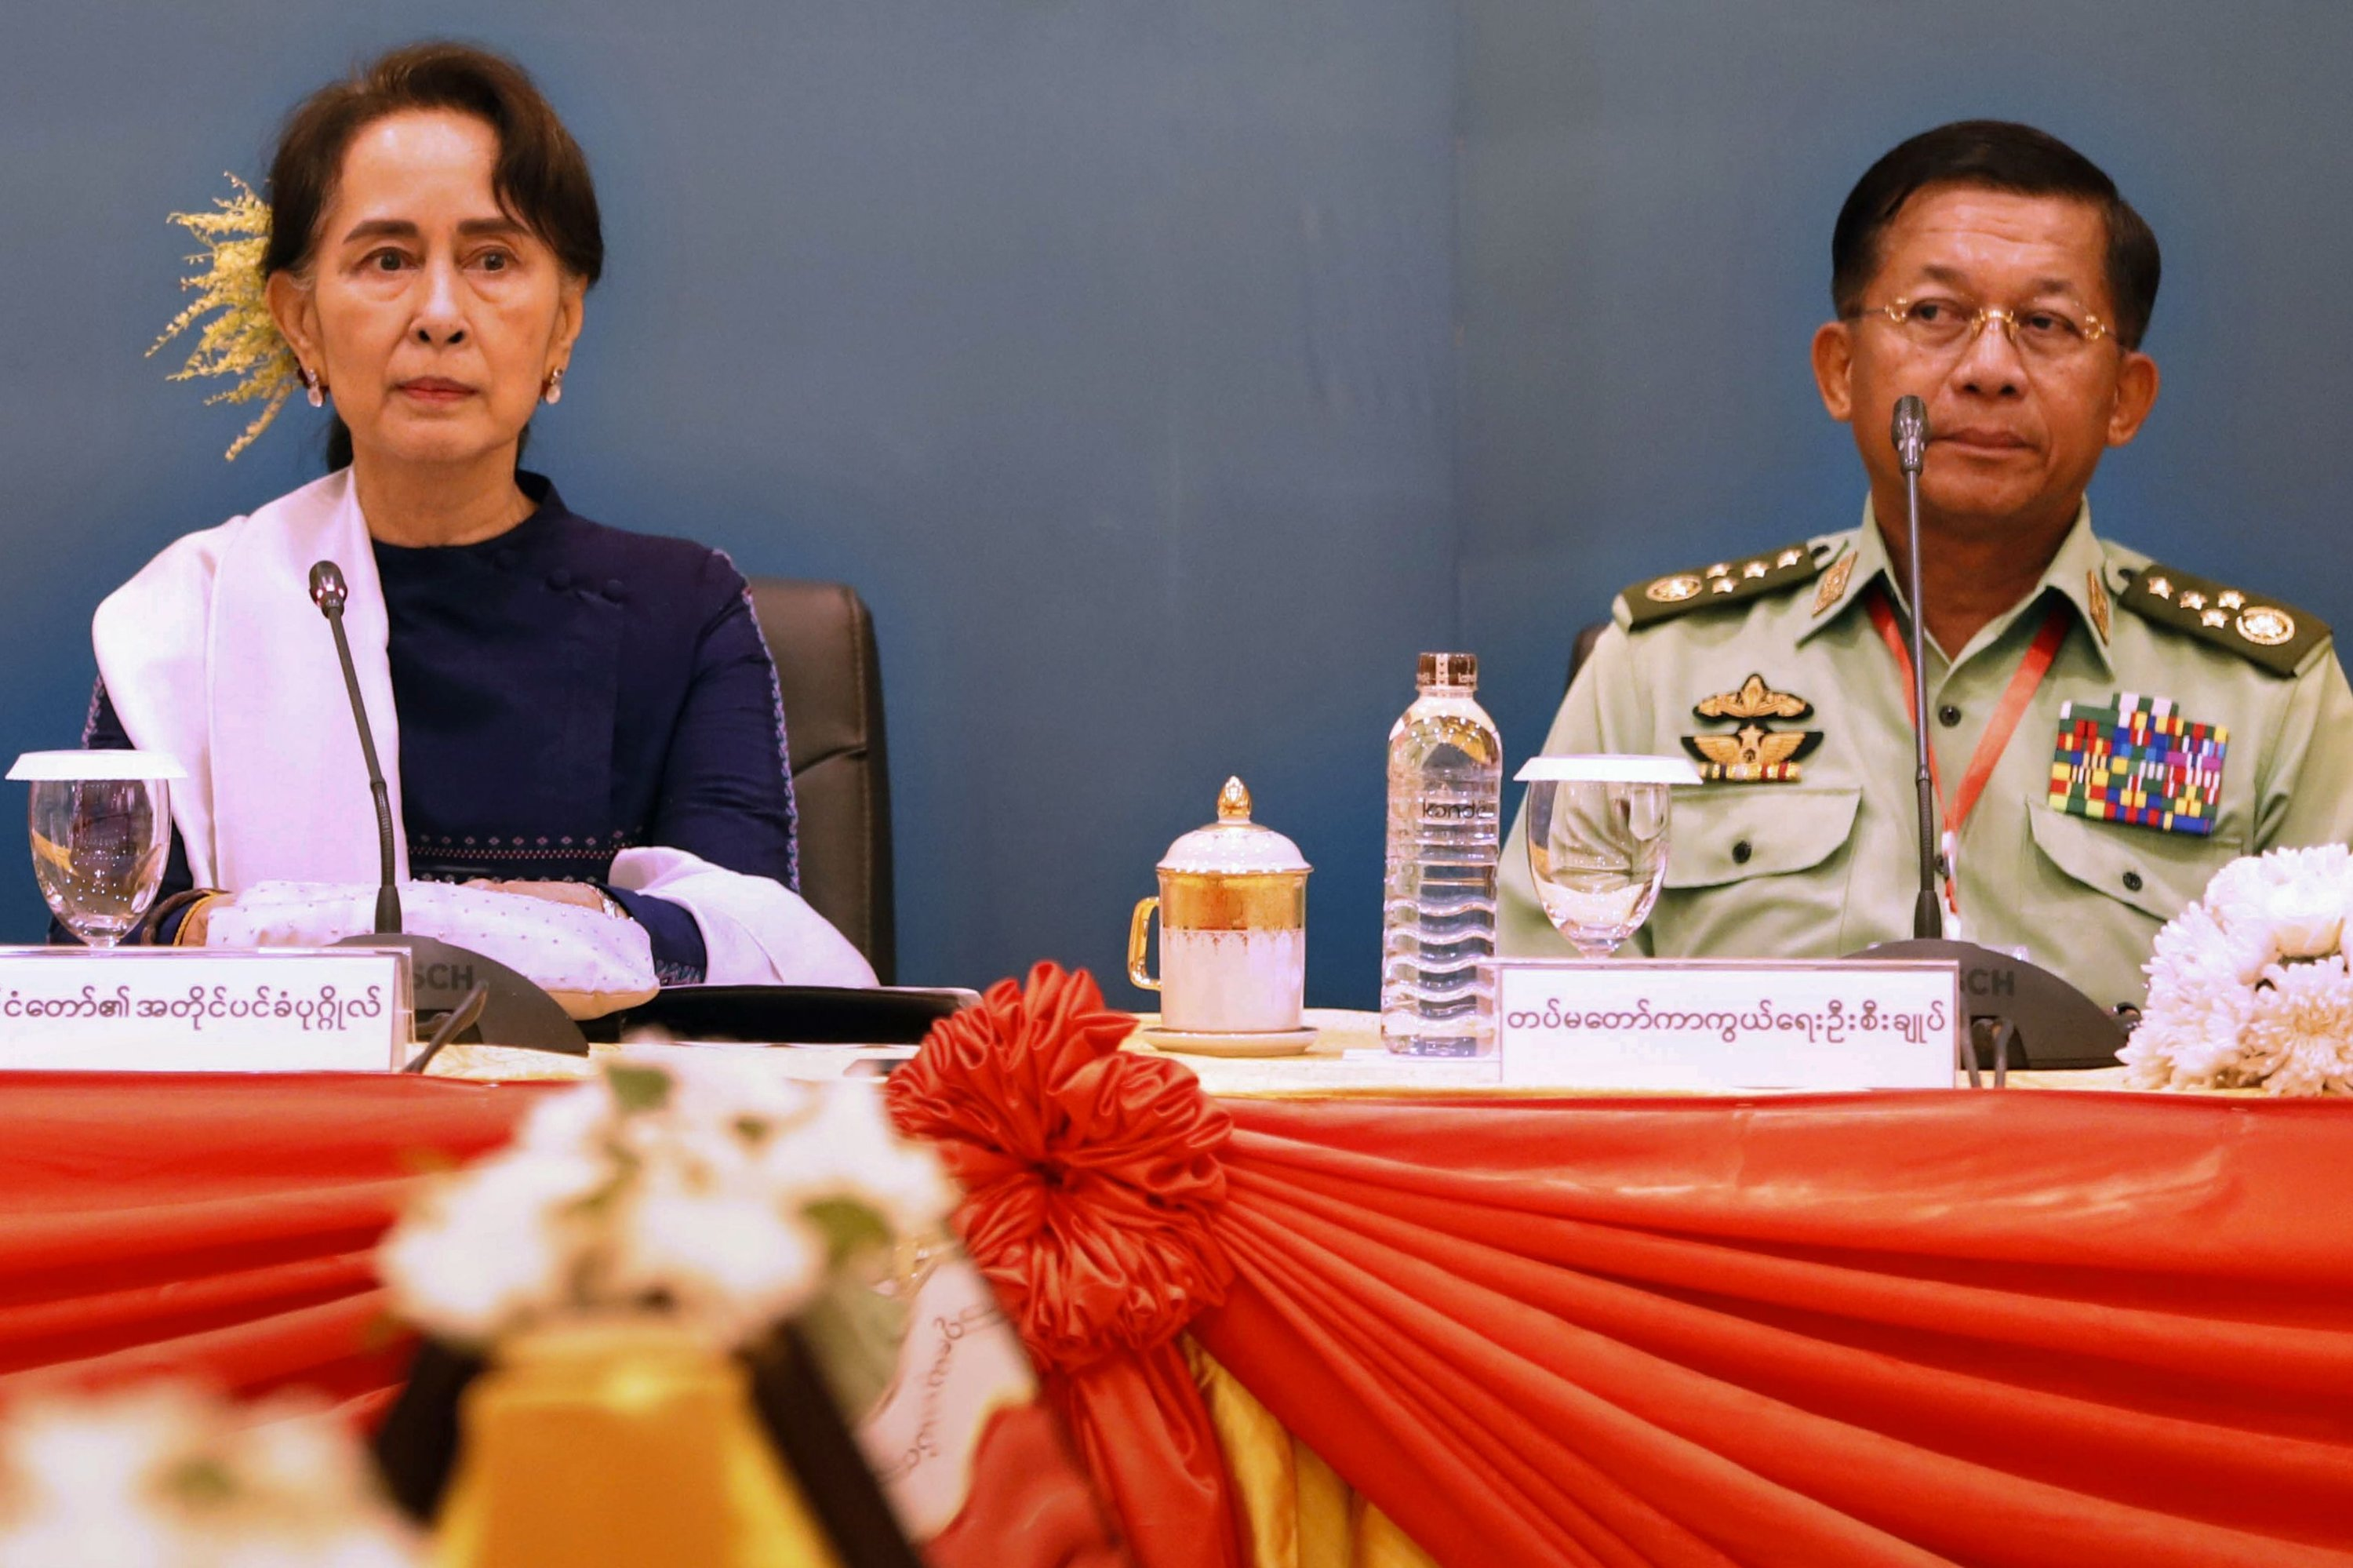 Myanmar's then-State Counsellor Aung San Suu Kyi (L) and military chief Senior General Min Aung Hlaing attend a meeting in Naypyidaw, Myanmar, Oct. 15, 2018. (AFP Photo)